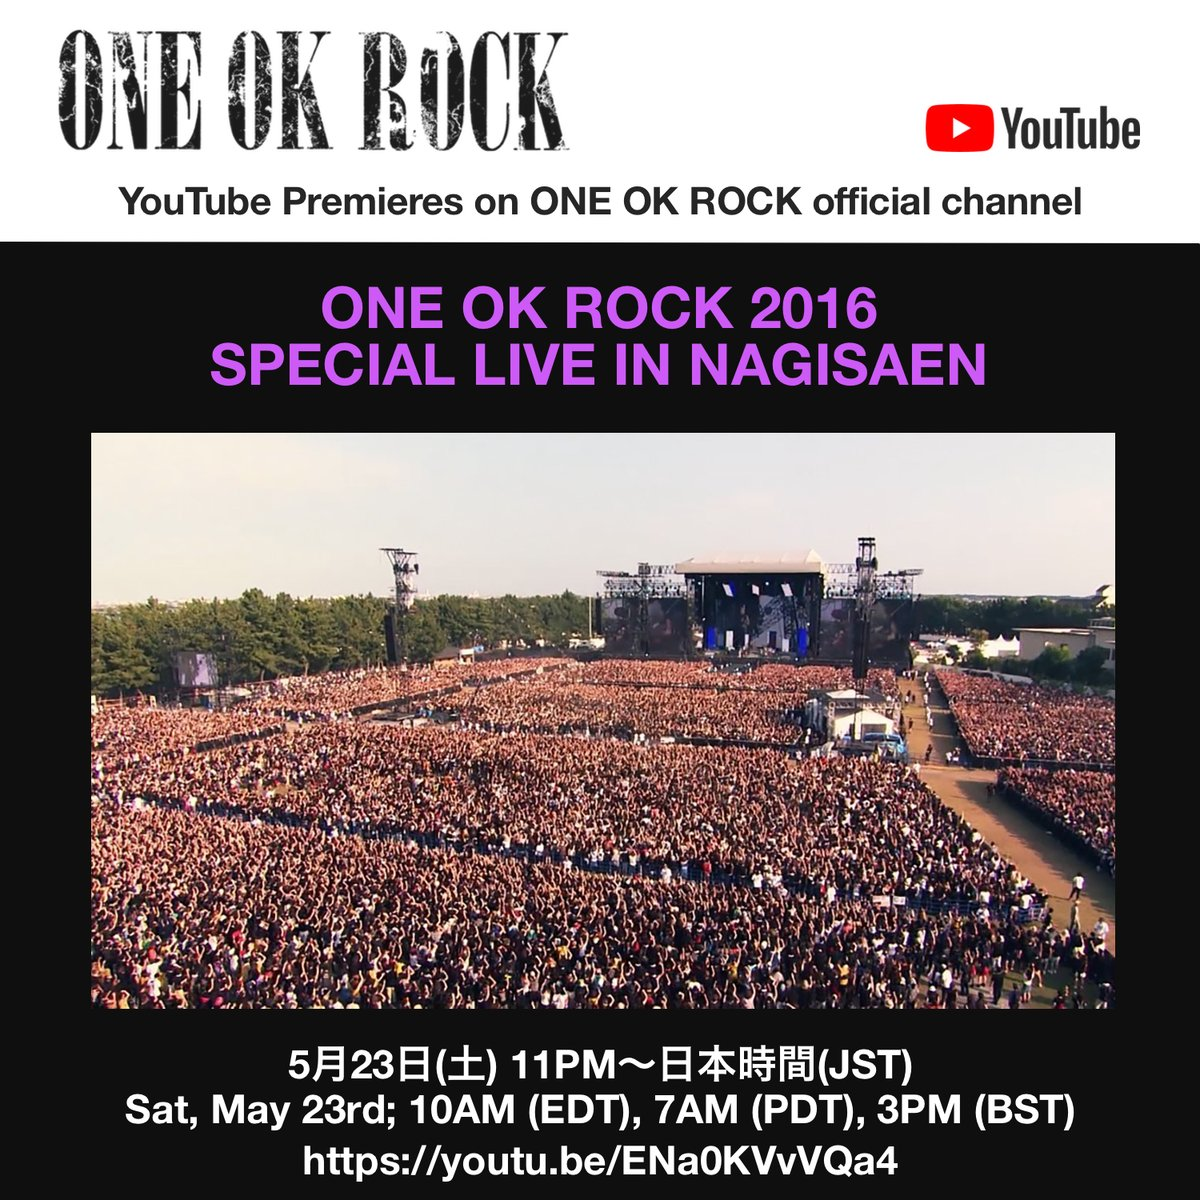 Over 110,000 fans visited Nagisaen for this special outdoor performance. Lets keep up this fight #strongertogether #ONEOKROCK #stayhome Saturday, May 23rd 11:00PM (JST) 10:00 AM (EDT), 7:00 AM (PDT), 3:00 PM (BST) URL: youtu.be/ENa0KVvVQa4